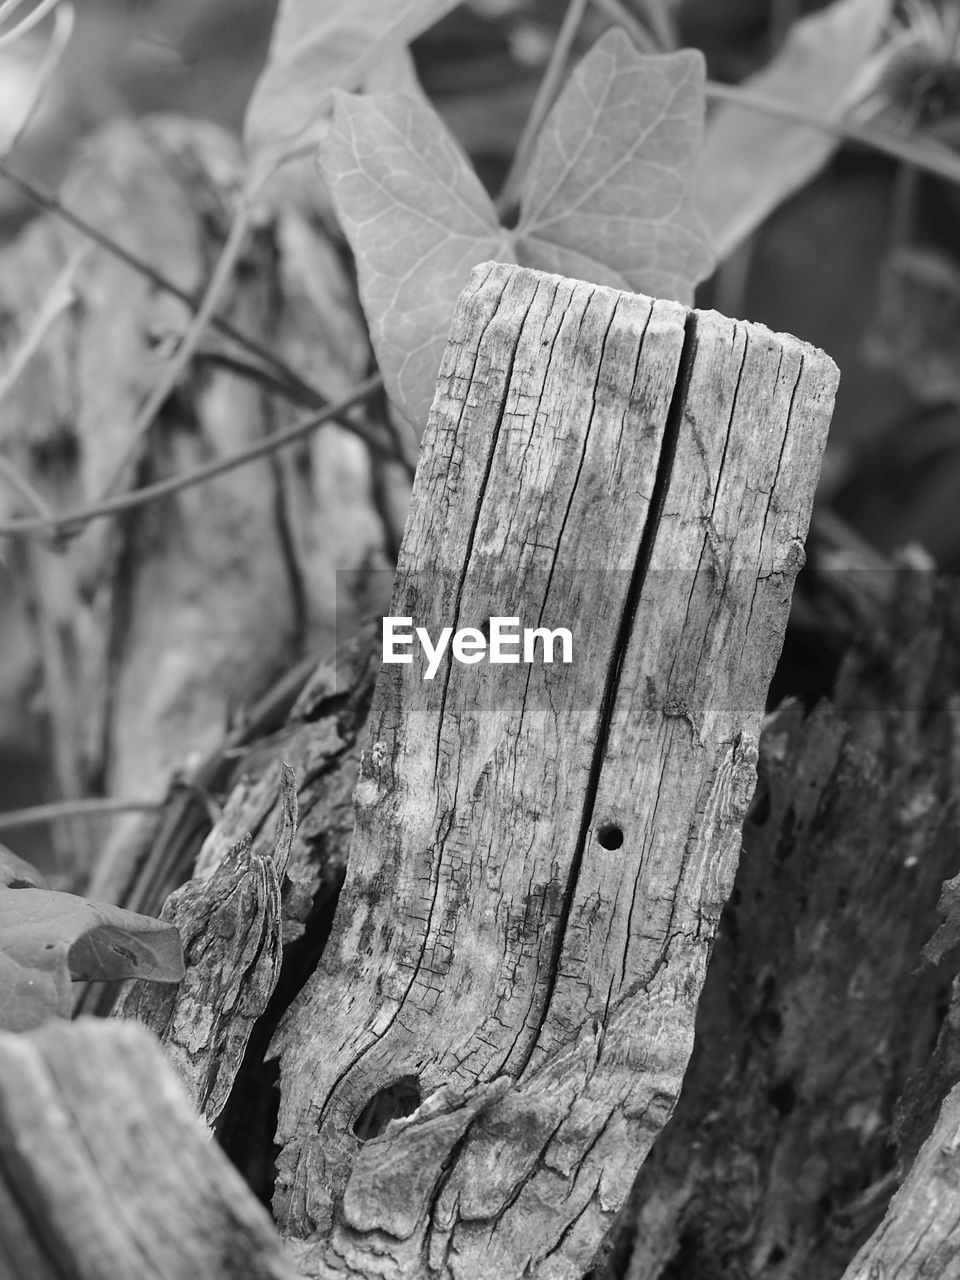 wood - material, tree, focus on foreground, close-up, no people, textured, day, wood, nature, plant, tree trunk, rough, selective focus, outdoors, log, trunk, timber, bark, cracked, pattern, chopped